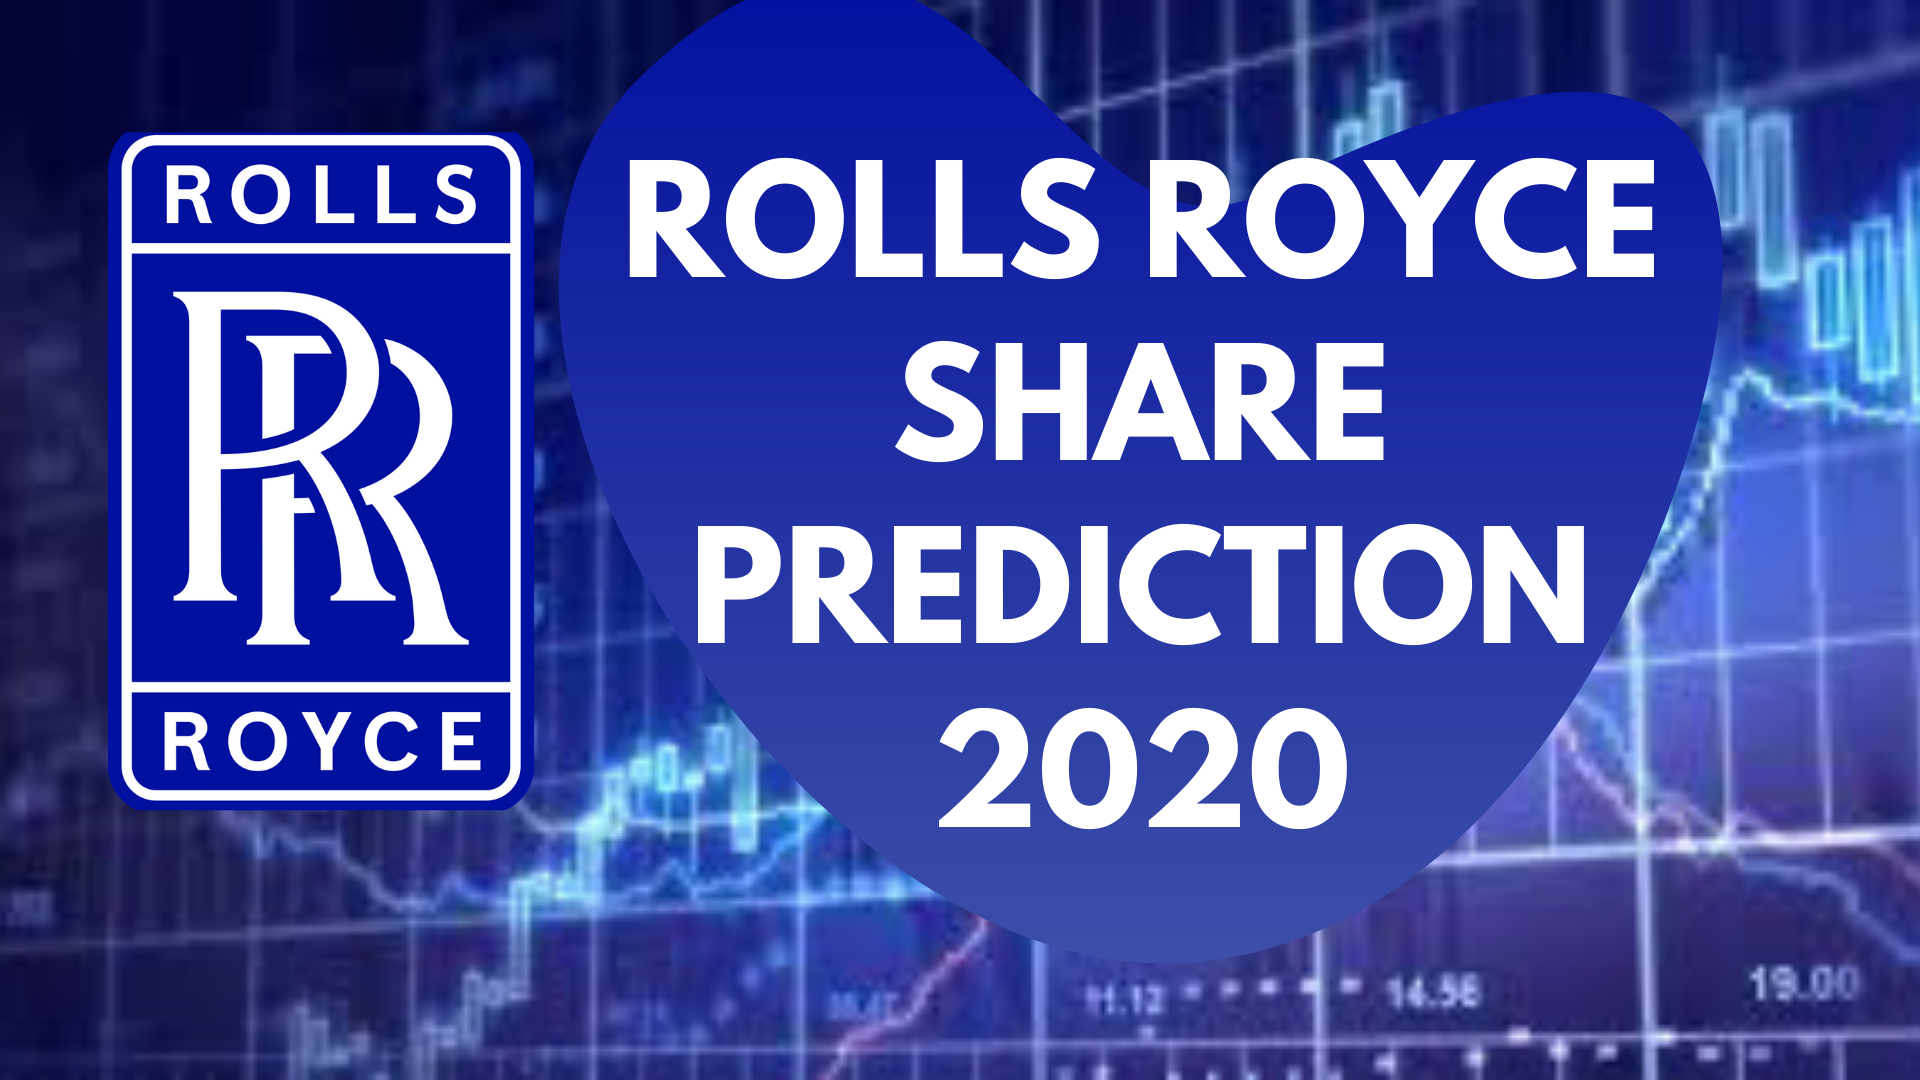 RR share prediction of rolls royce